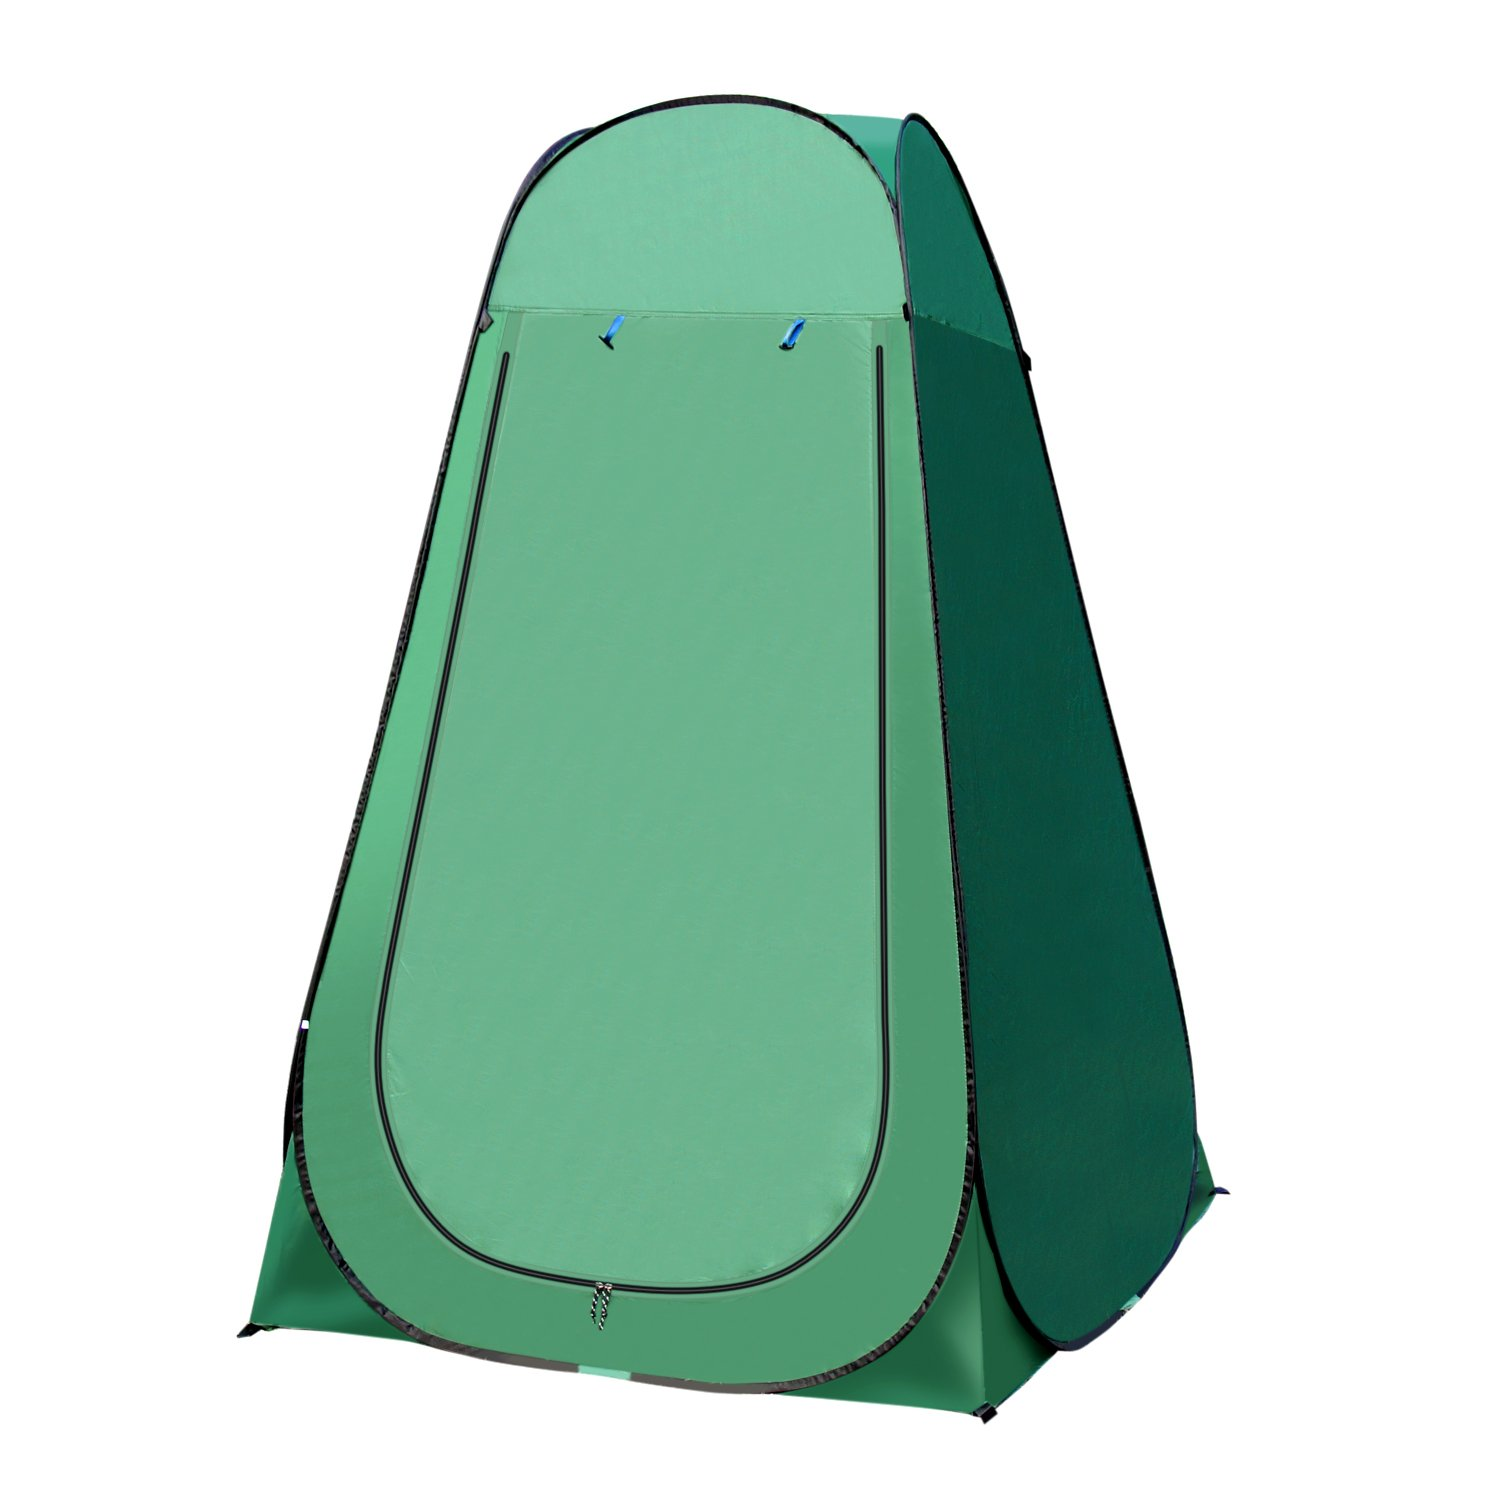 OutTopper Pop Up Camping Shower Tent,Waterproof Portable Toilet Changing Dressing Room Shelter with Carry Bag